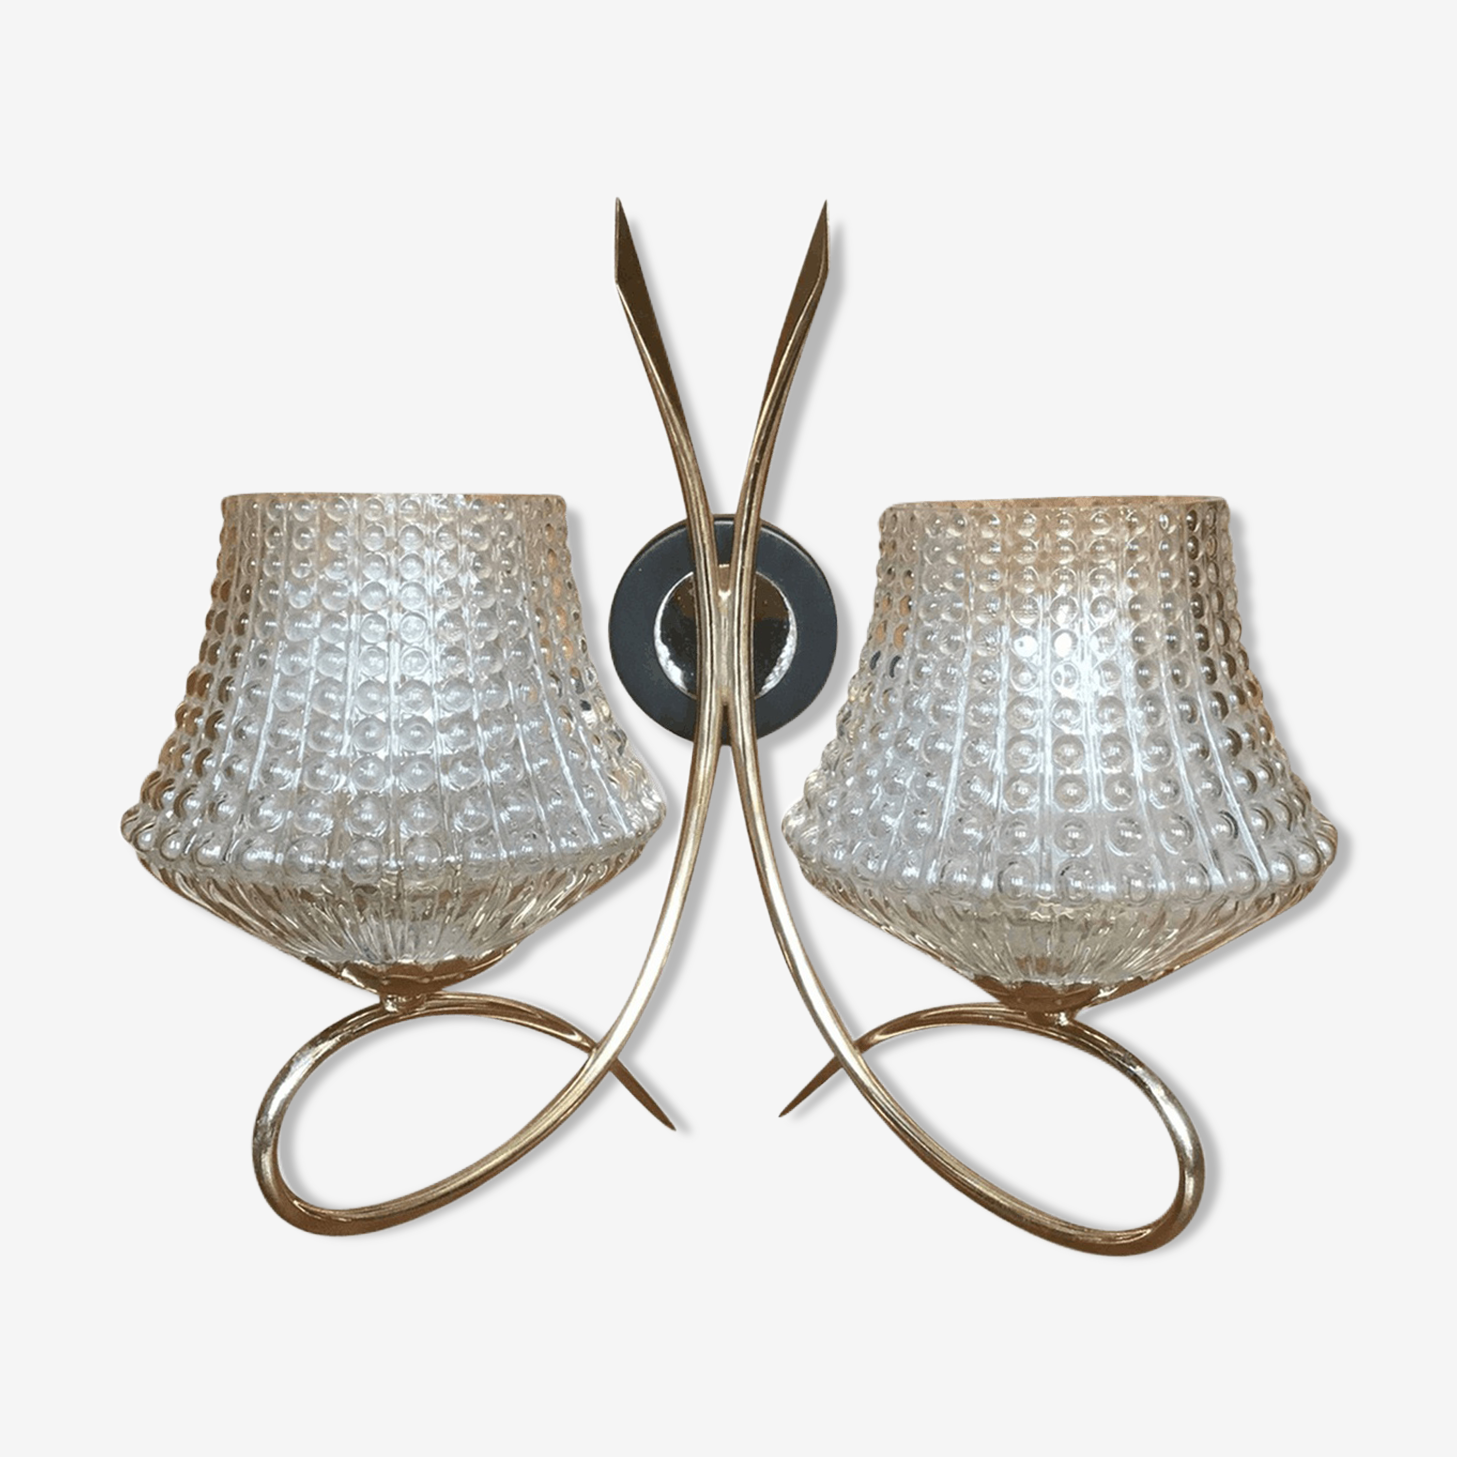 Wall light double House Arlus 1960